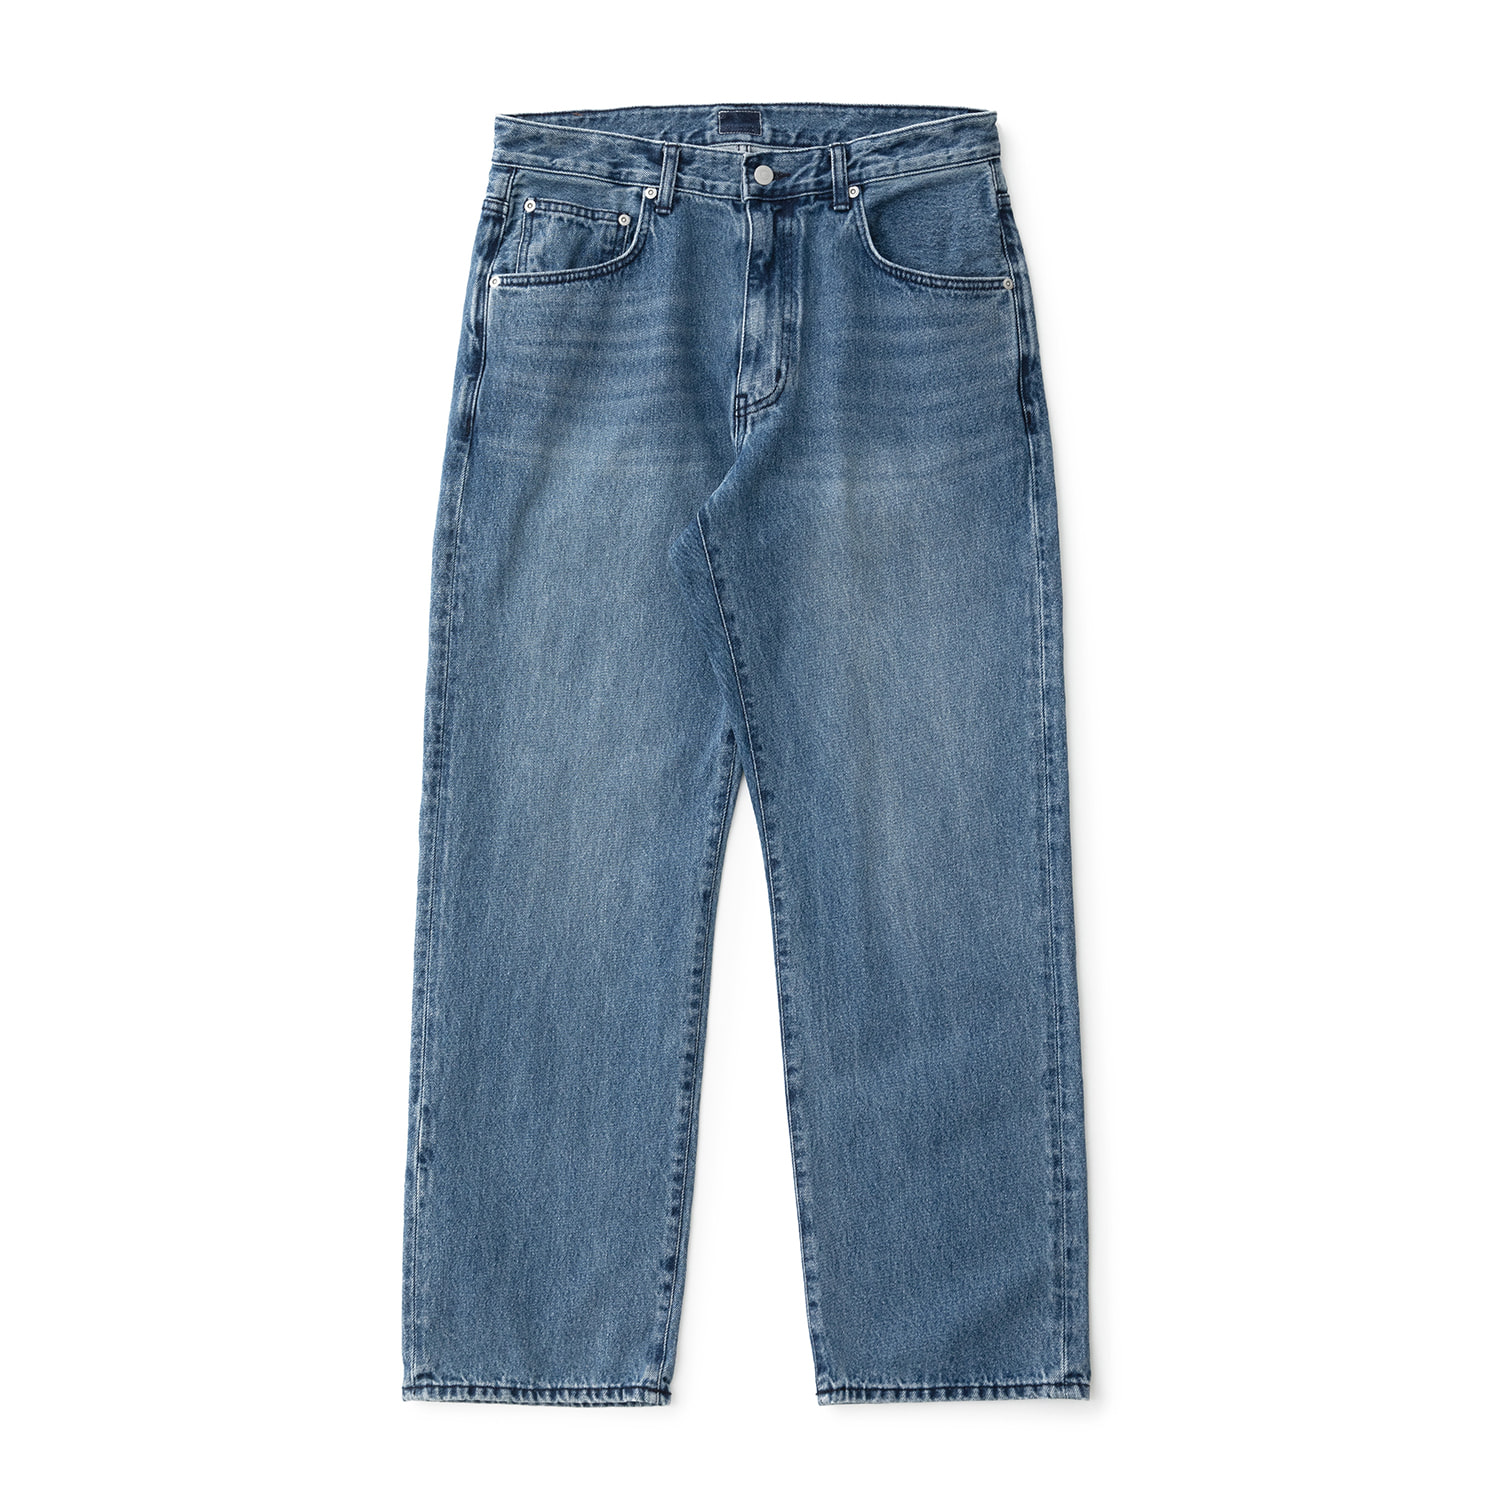 21SS River Jeans Type 3 (Mid Blue)